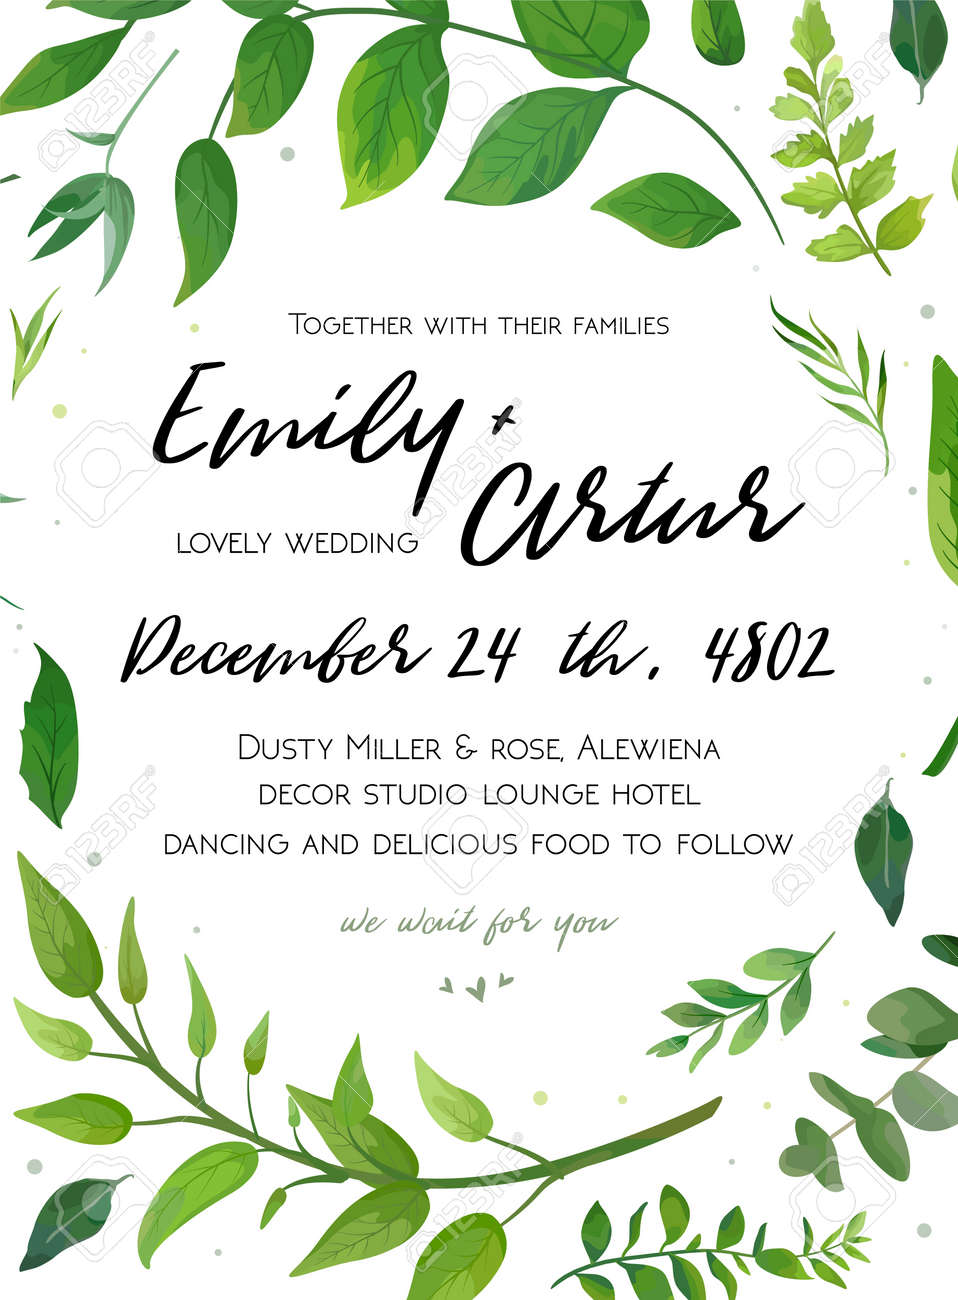 Wedding Invitation Template With Green Fern Leaves Design Illustration